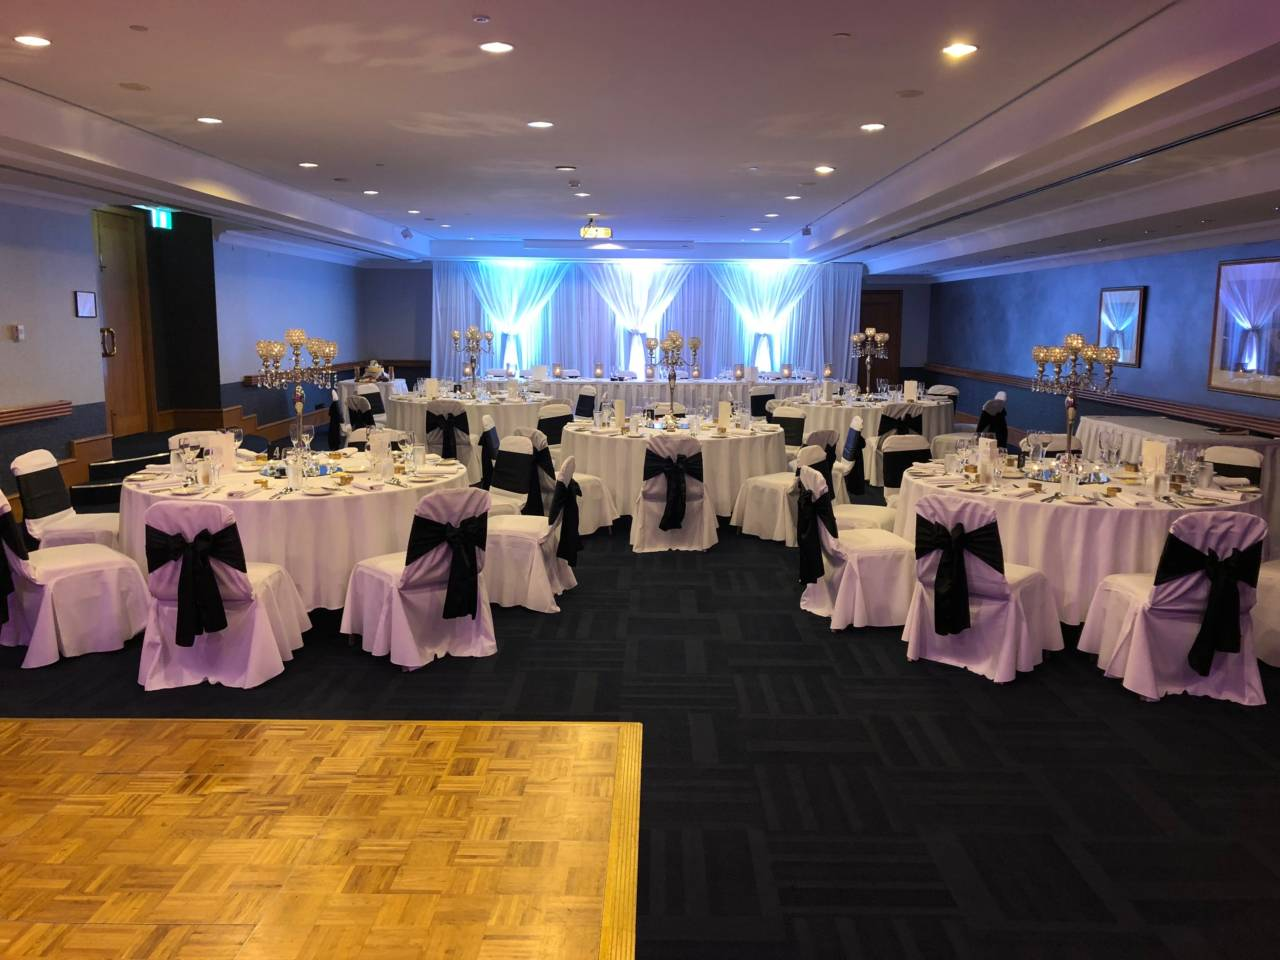 Venue Set Up With Tables And Chairs For a Wedding Function